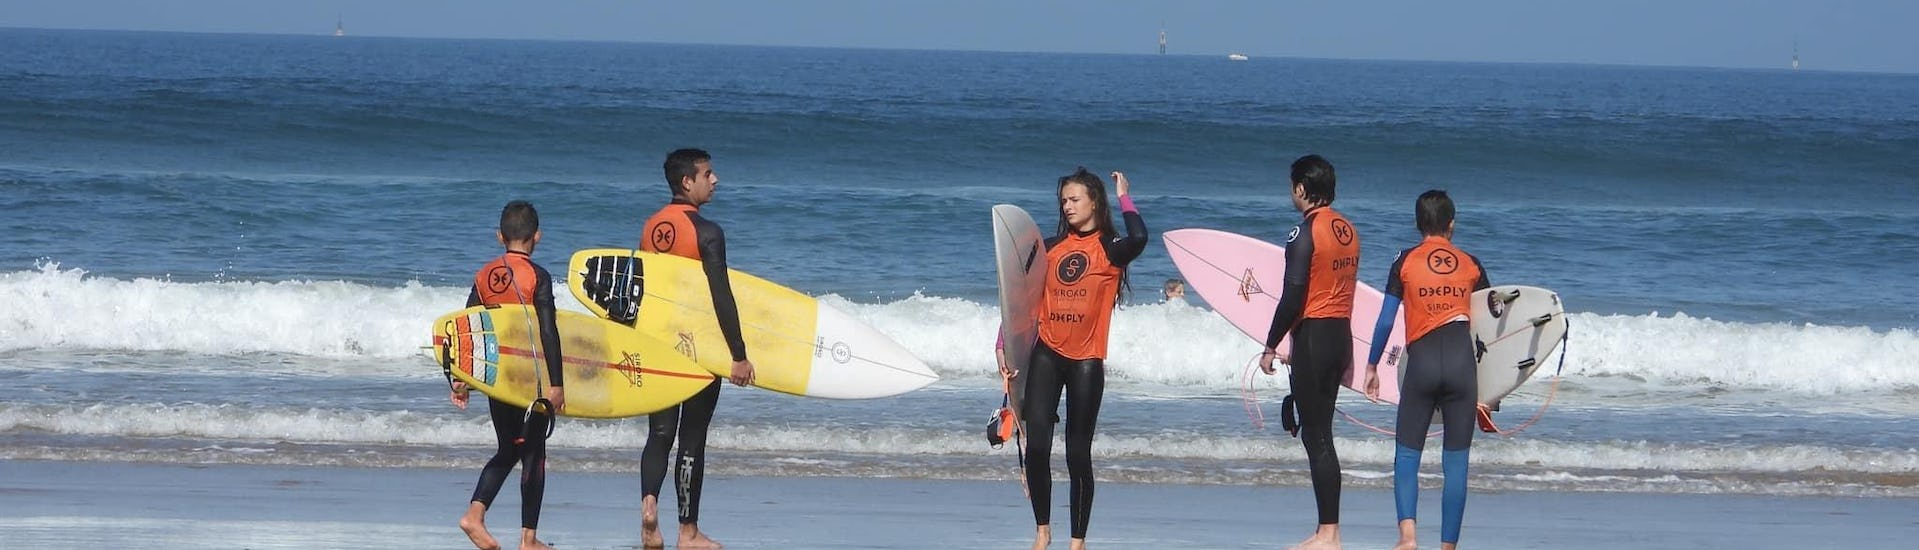 Surfing Lessons for Kids & Adults - Summer - Beginners